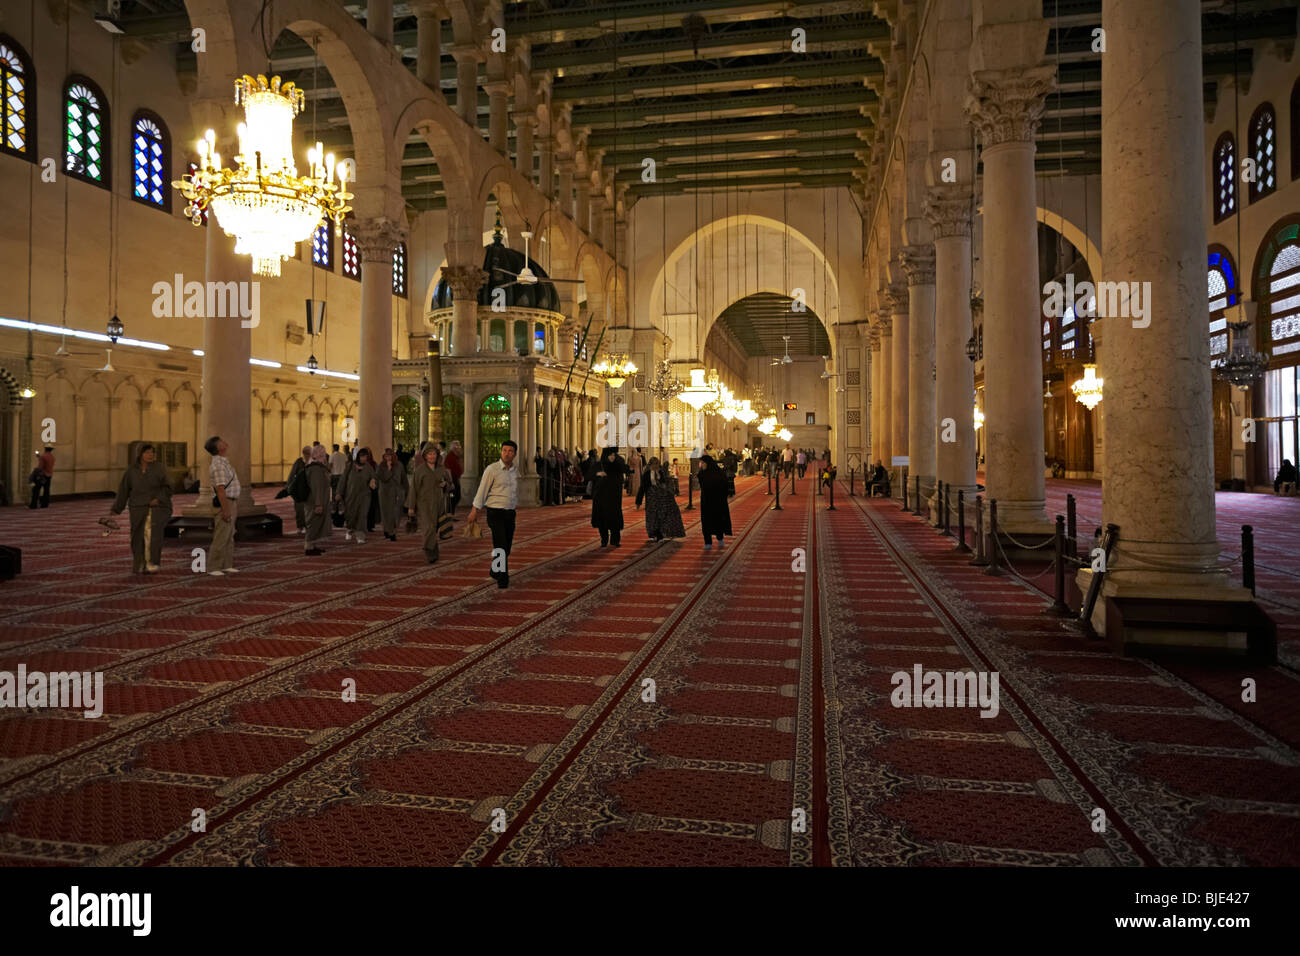 Syria Damascus the tomb of John the Baptist in the prayer hall of the Great Umayyad mosque - Stock Image